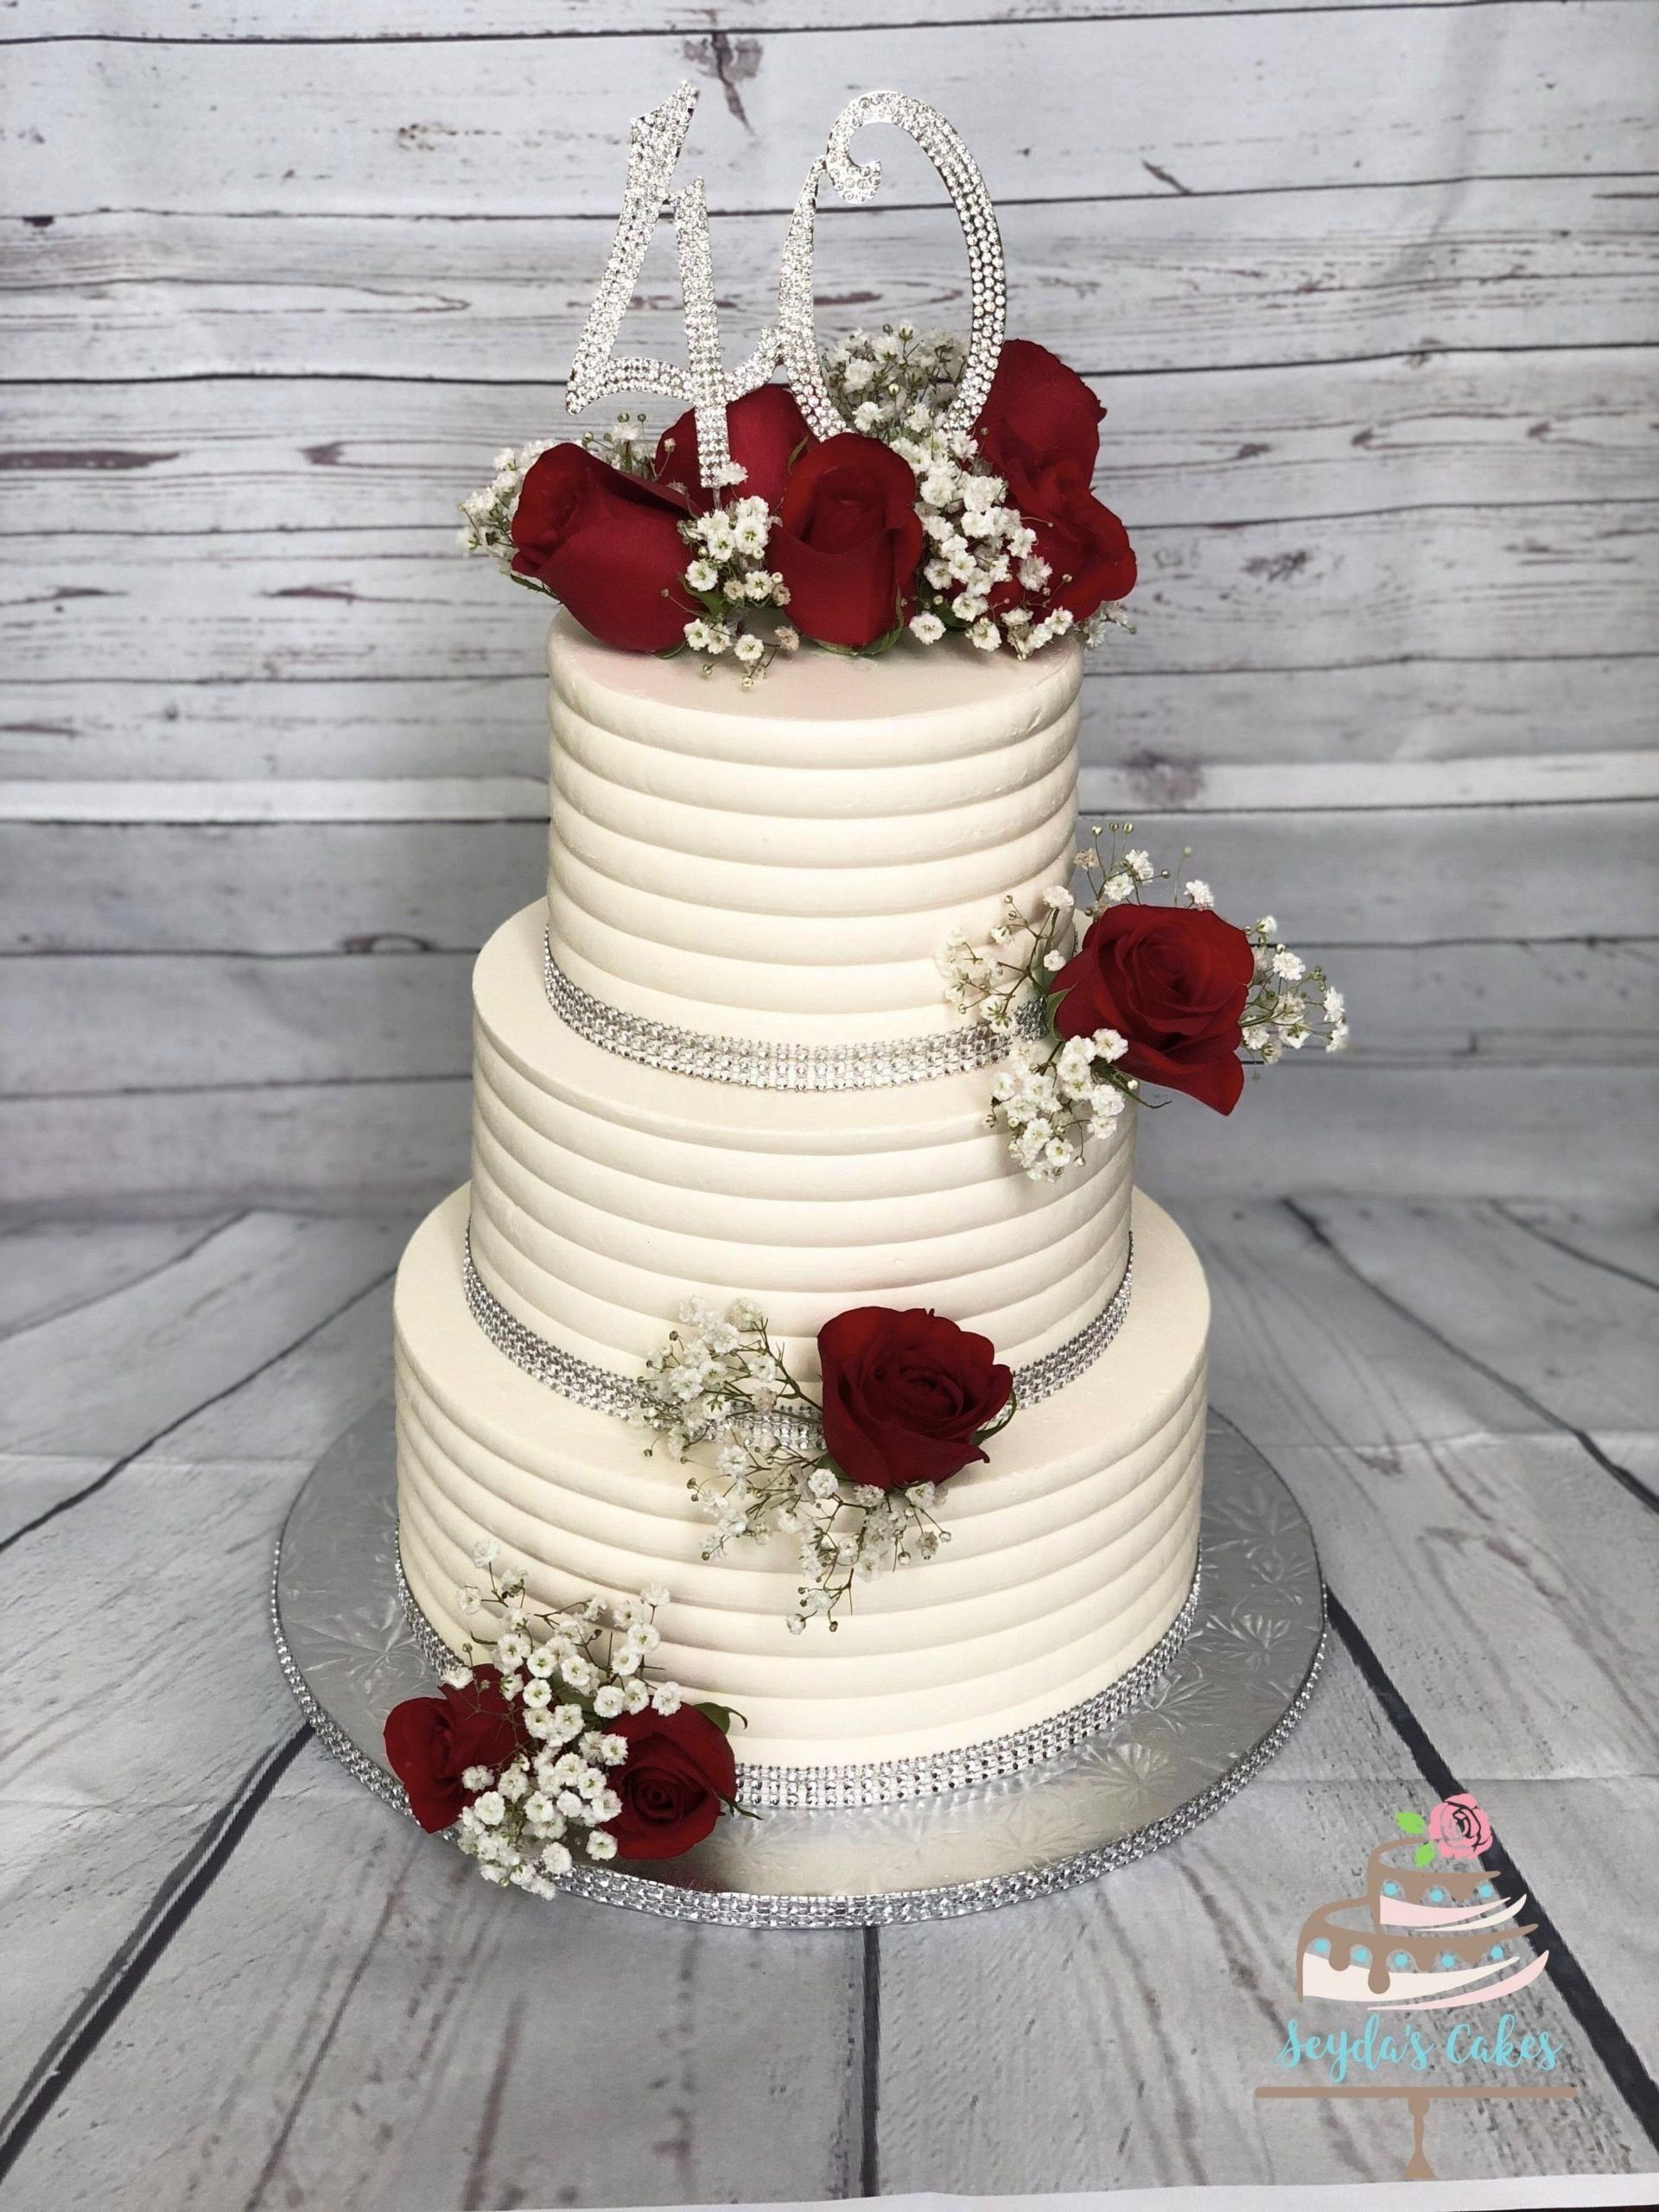 Things You Wont Miss Out If You Attend 9th Wedding Anniversary Cake Ideas9th9 Things You Wont Miss Out If You Attend 9th Wedding Anniversary Cake Ideas9th 9 Things You Wo...